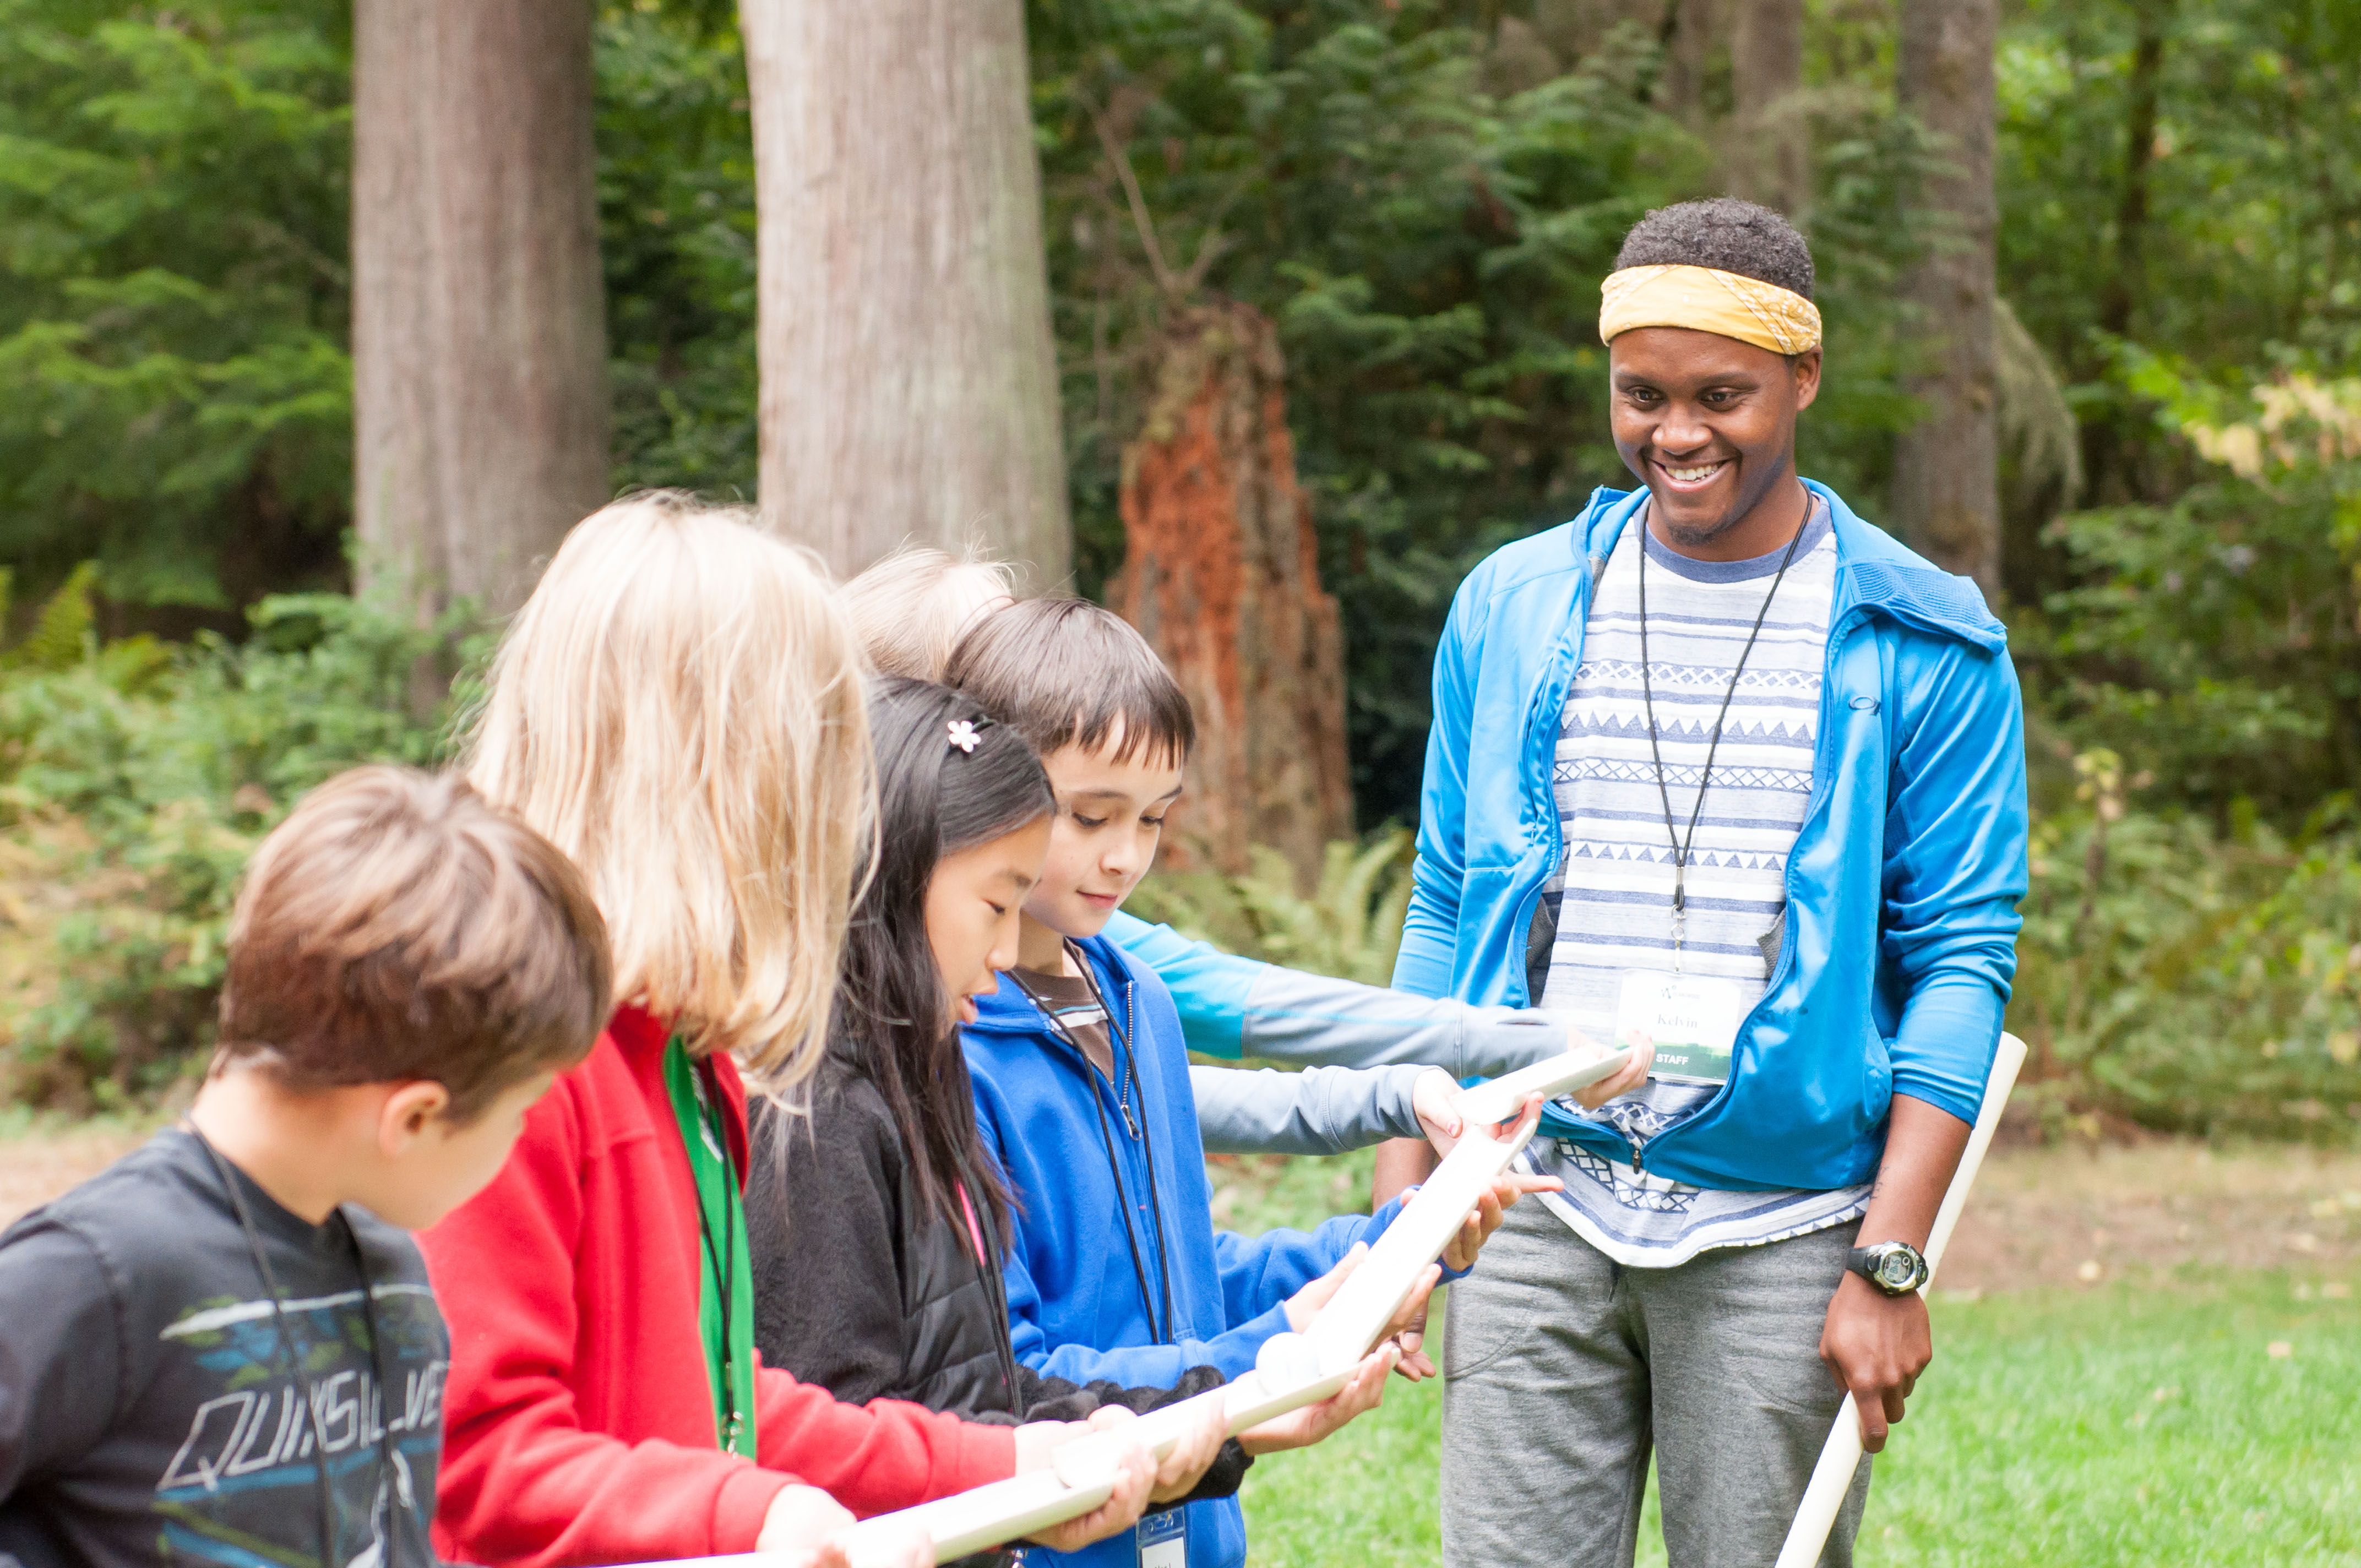 Graduate program alum Kelvin Washington, participating in a team-building exercise with students in the School Overnight Program.